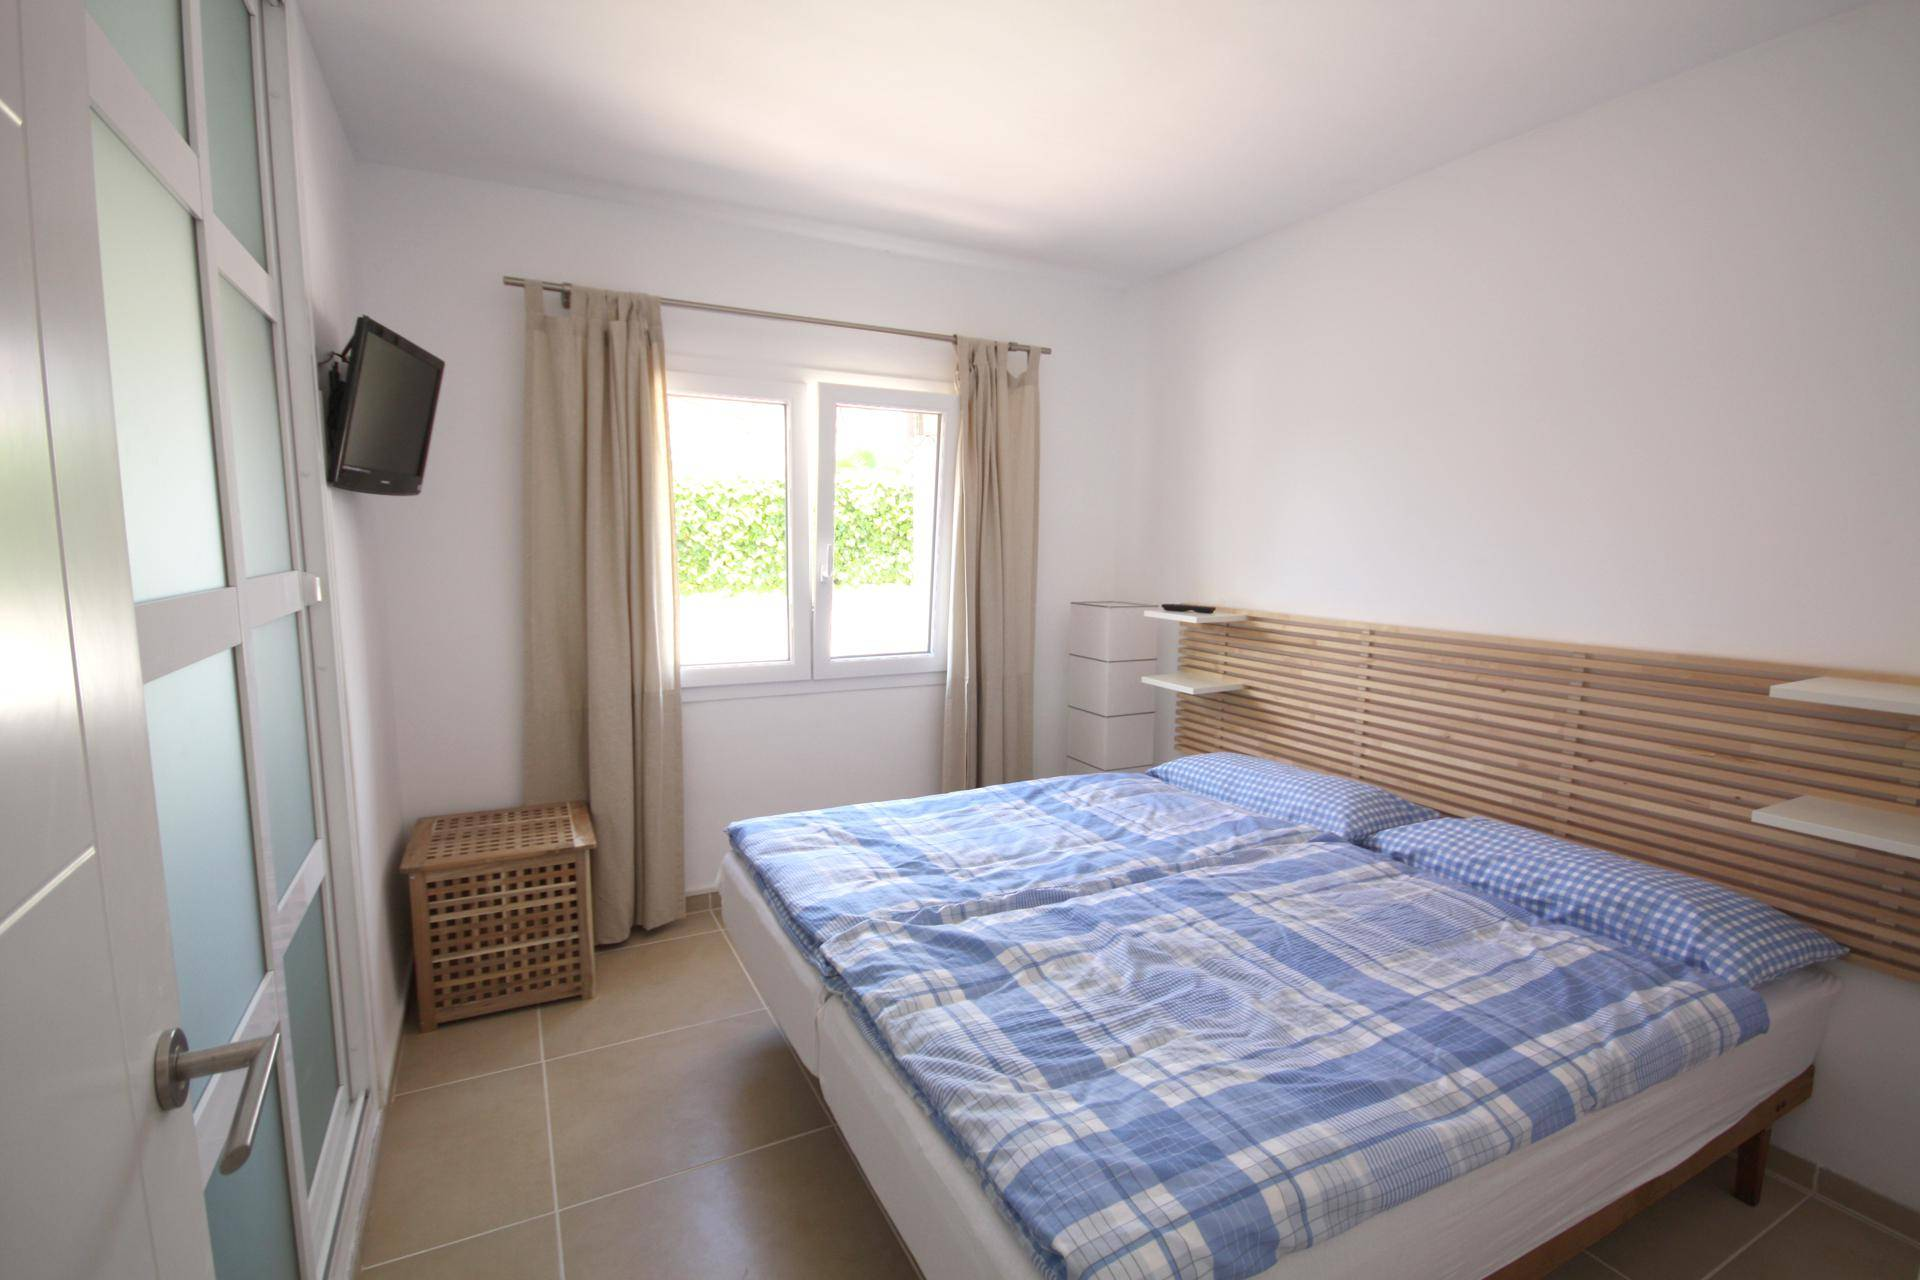 01-12 Small holiday home Mallorca south Bild 20